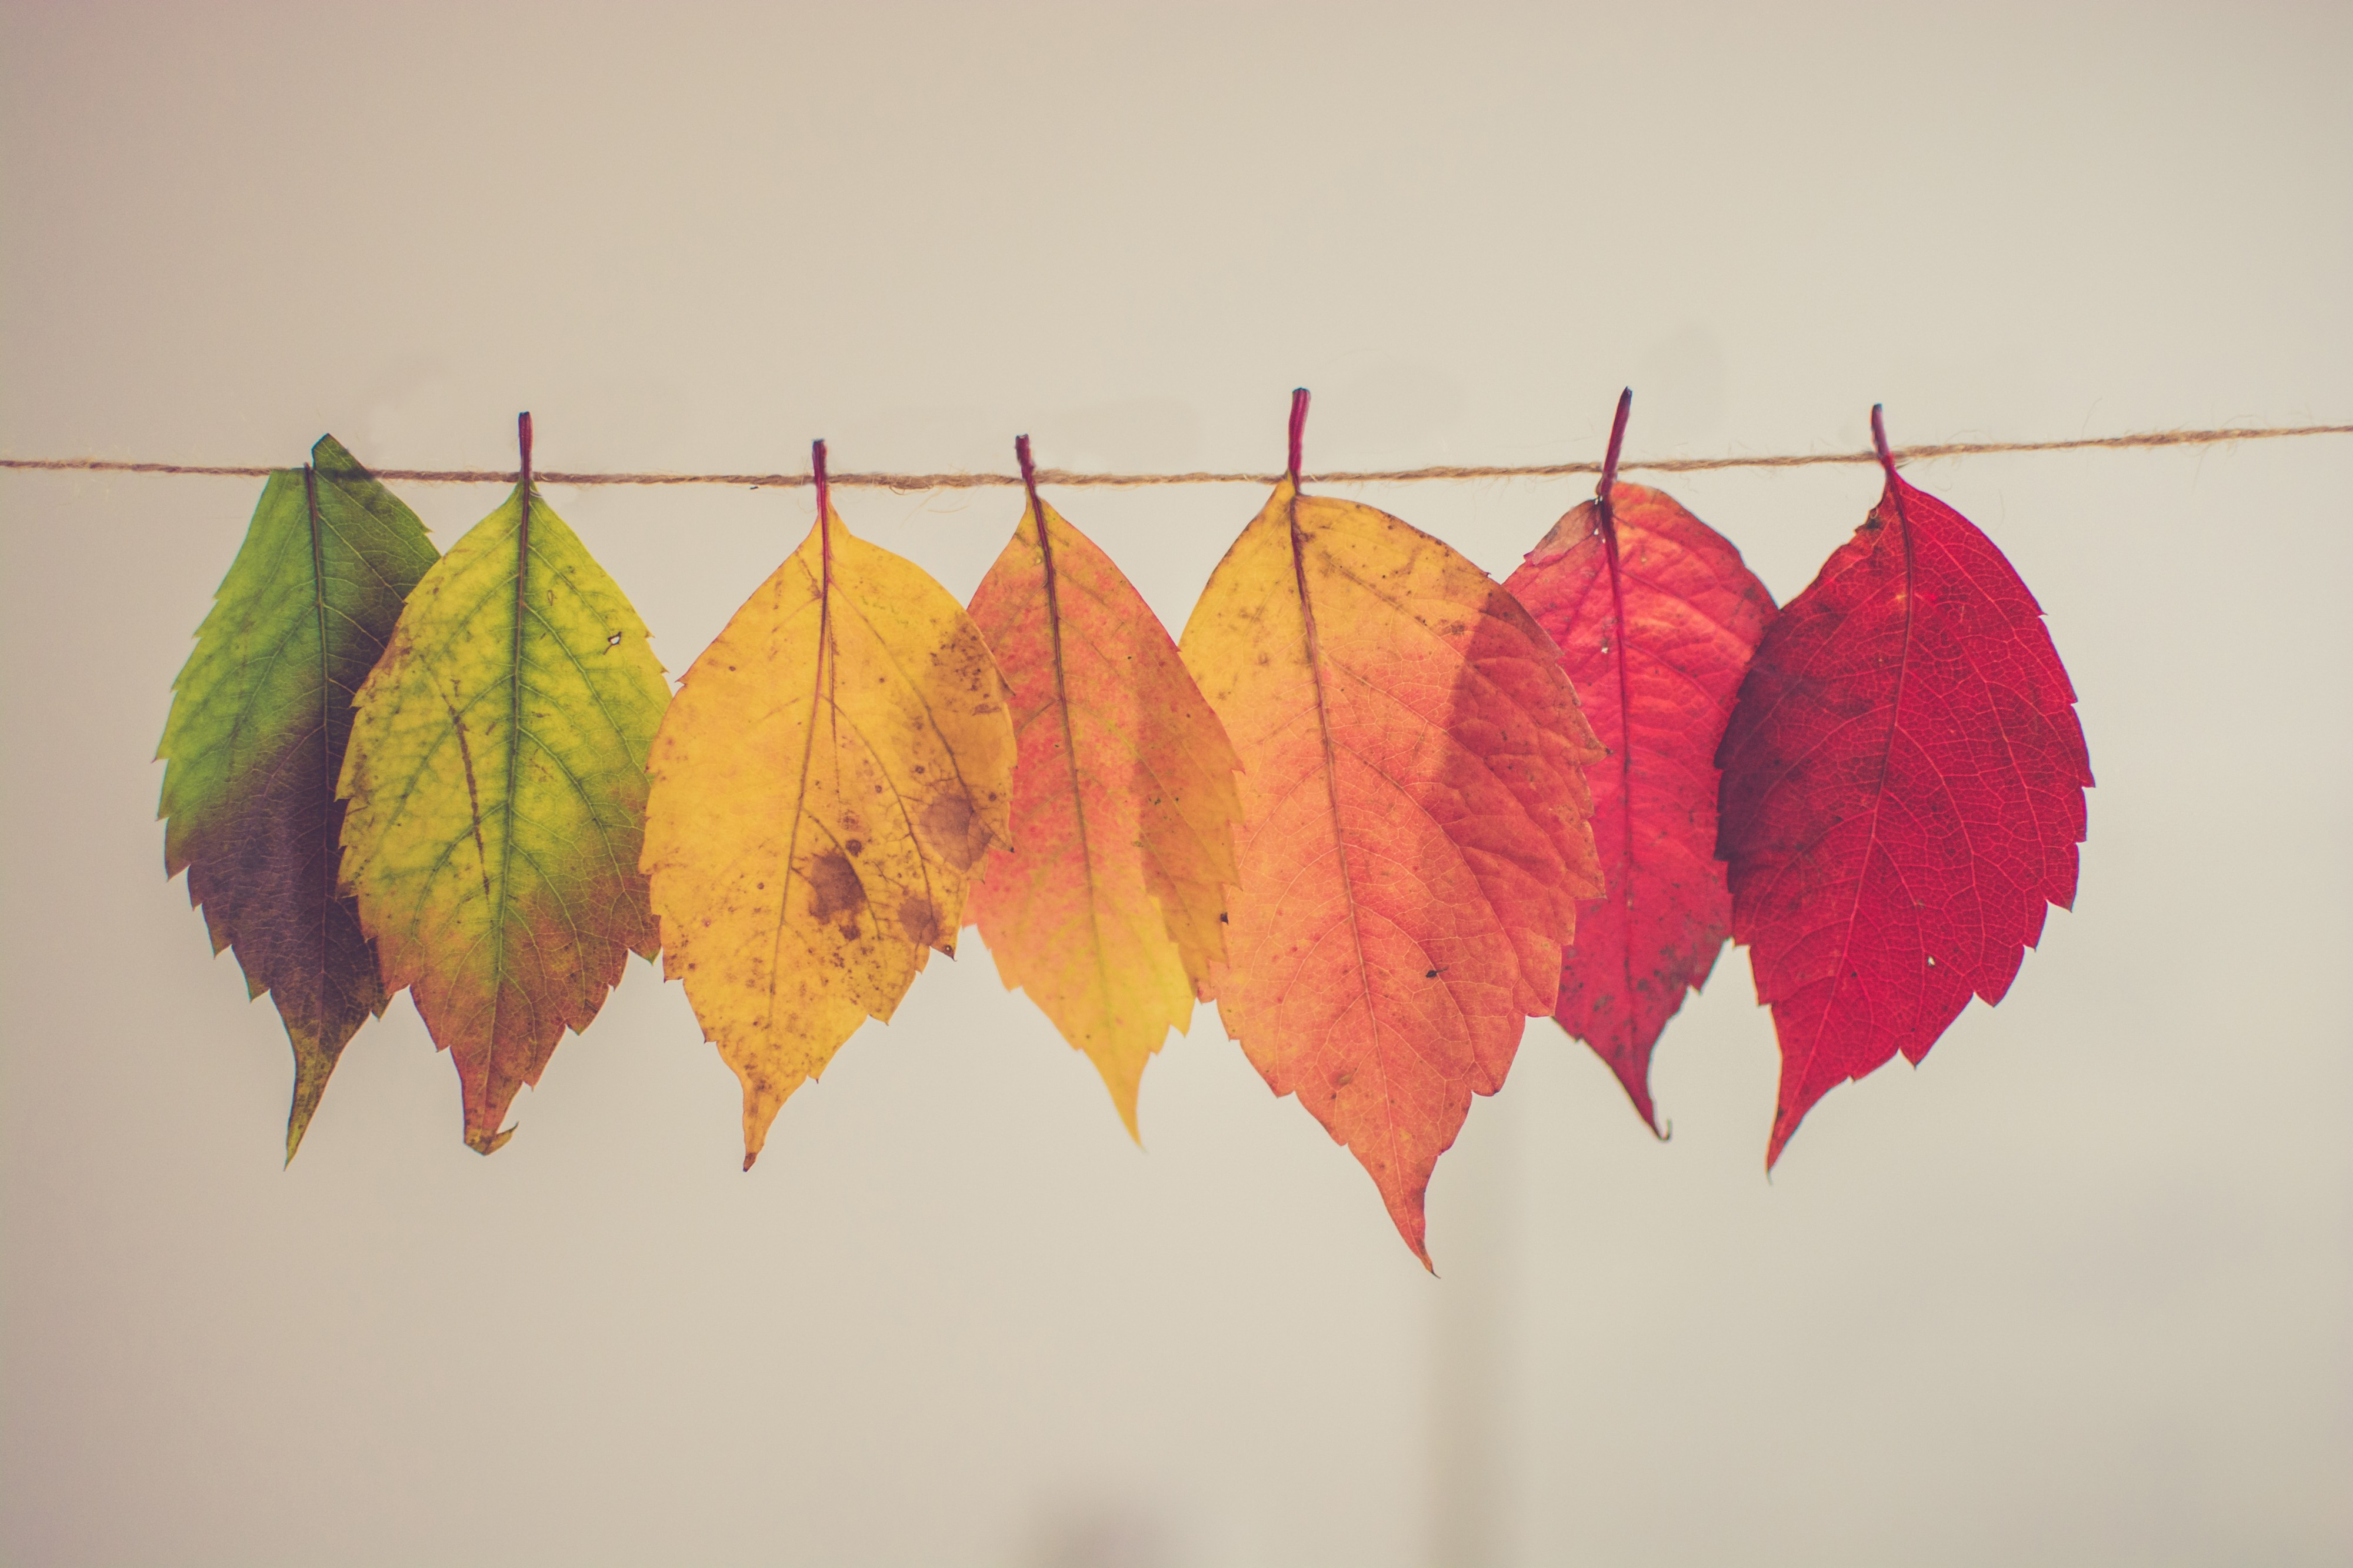 """""""assorted-color lear hanging decor"""" by Chris Lawton on Unsplash"""